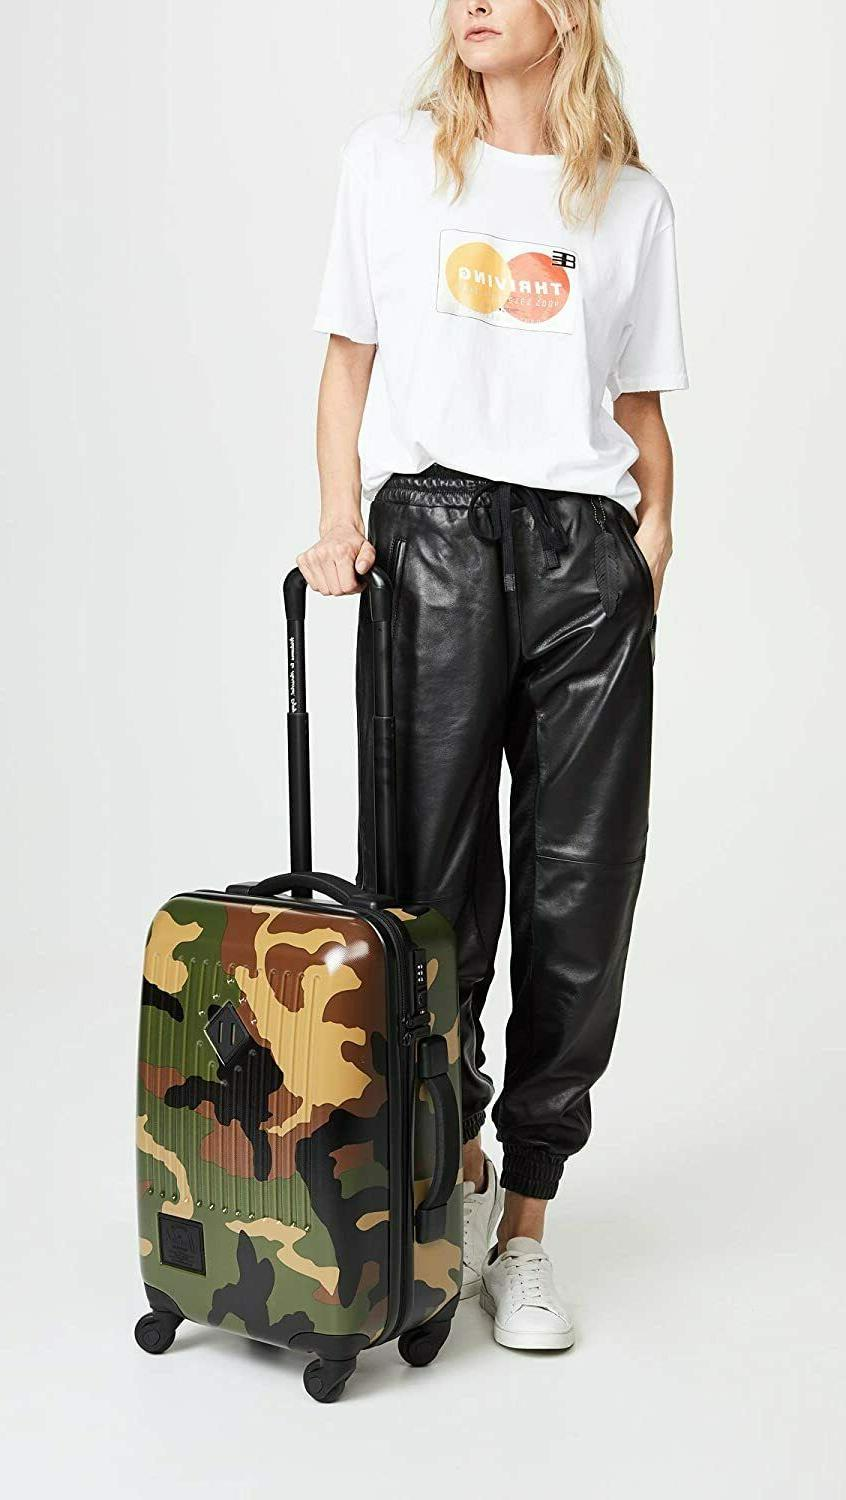 Herschel Trade Luggage Carry On 40.0L Hardshell